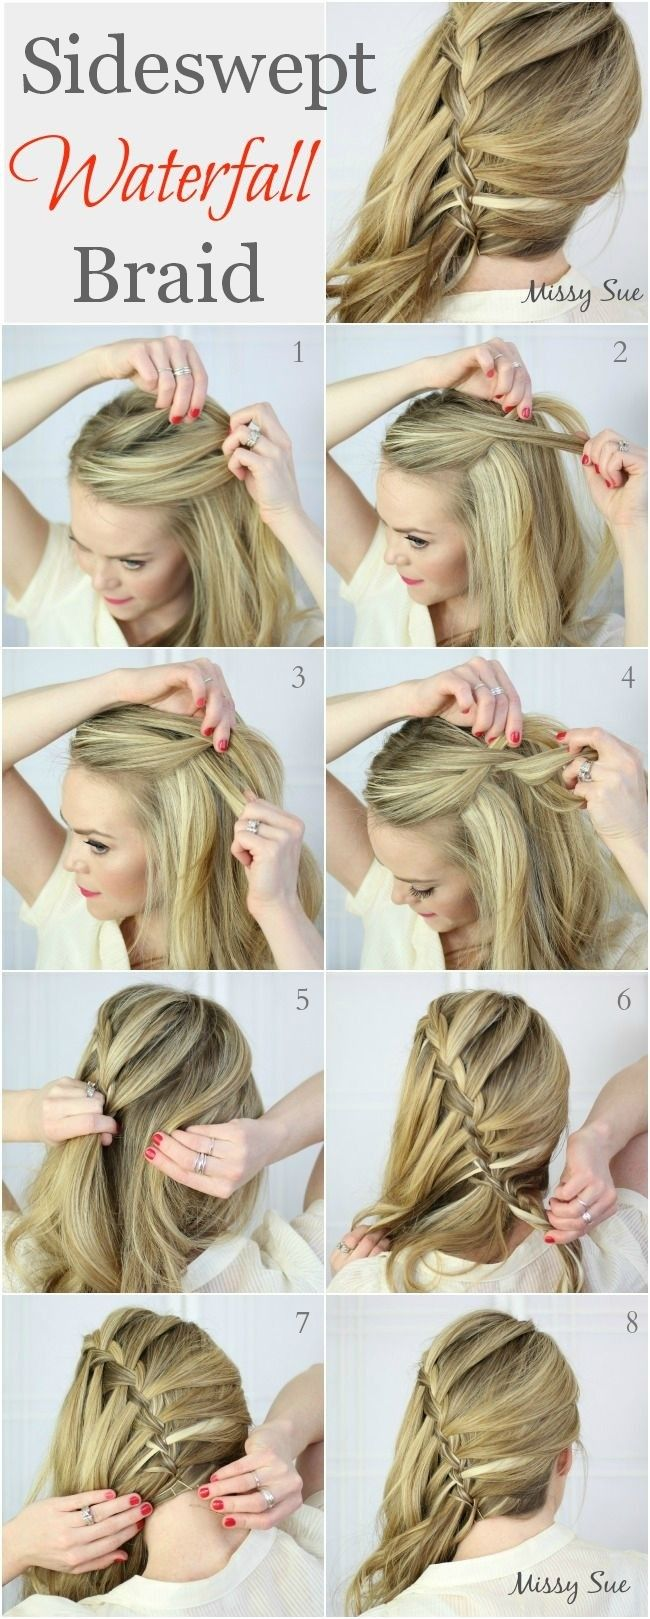 10 Best Waterfall Braids: Hairstyle Ideas for Long Hair | PoPular Haircuts